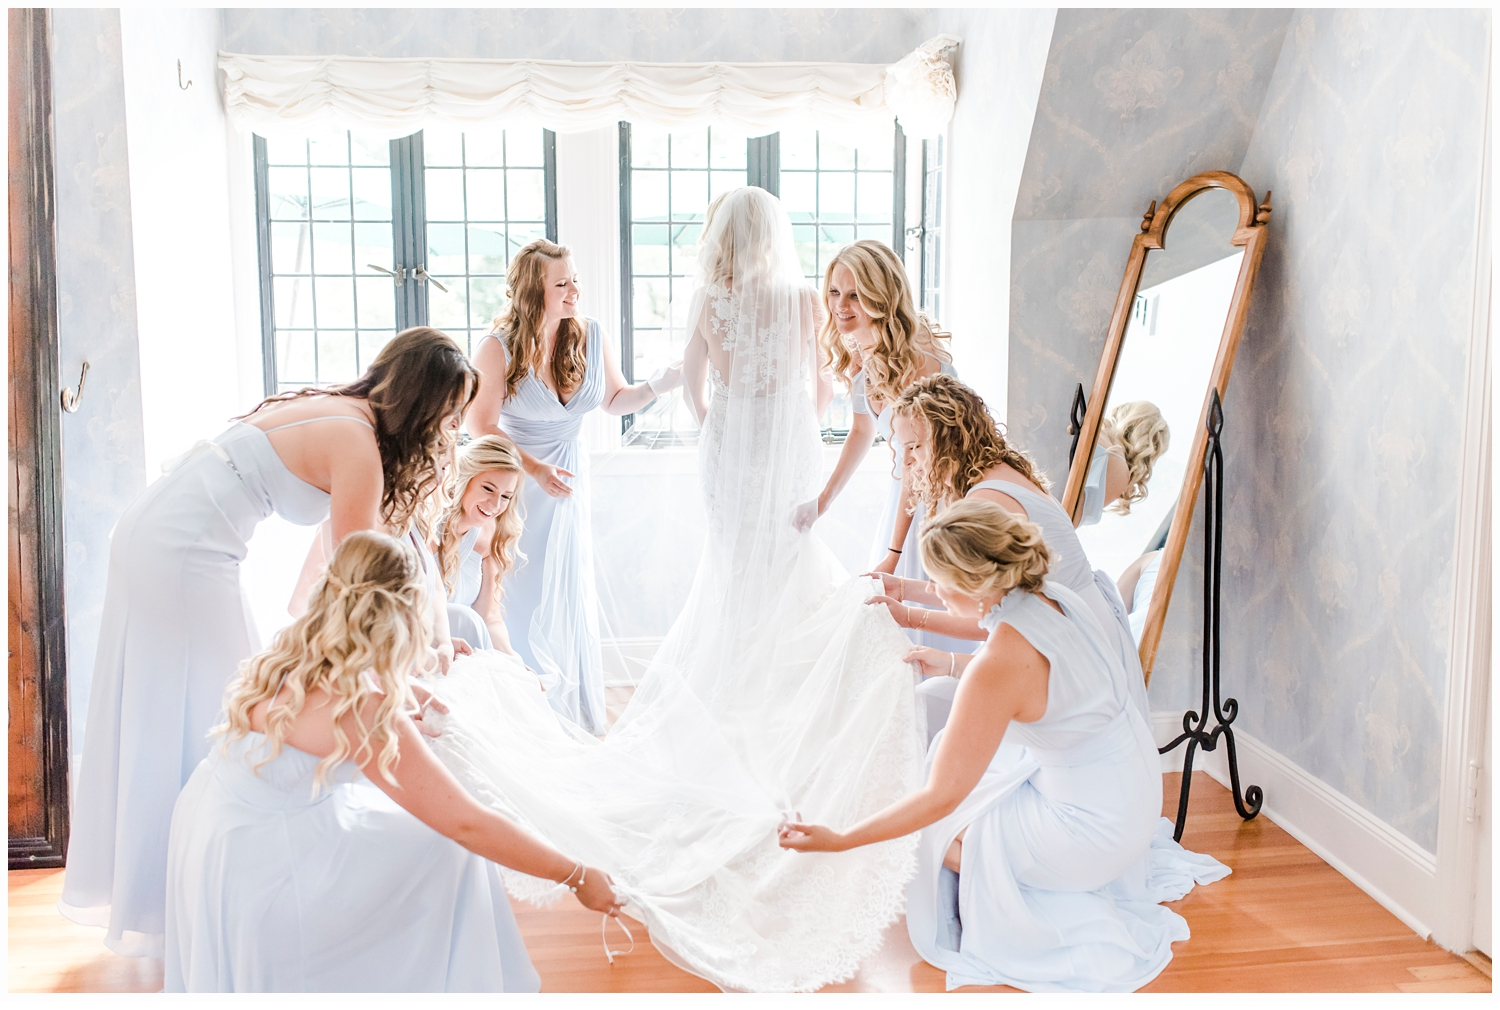 bridesmaids helping bride put on wedding gown